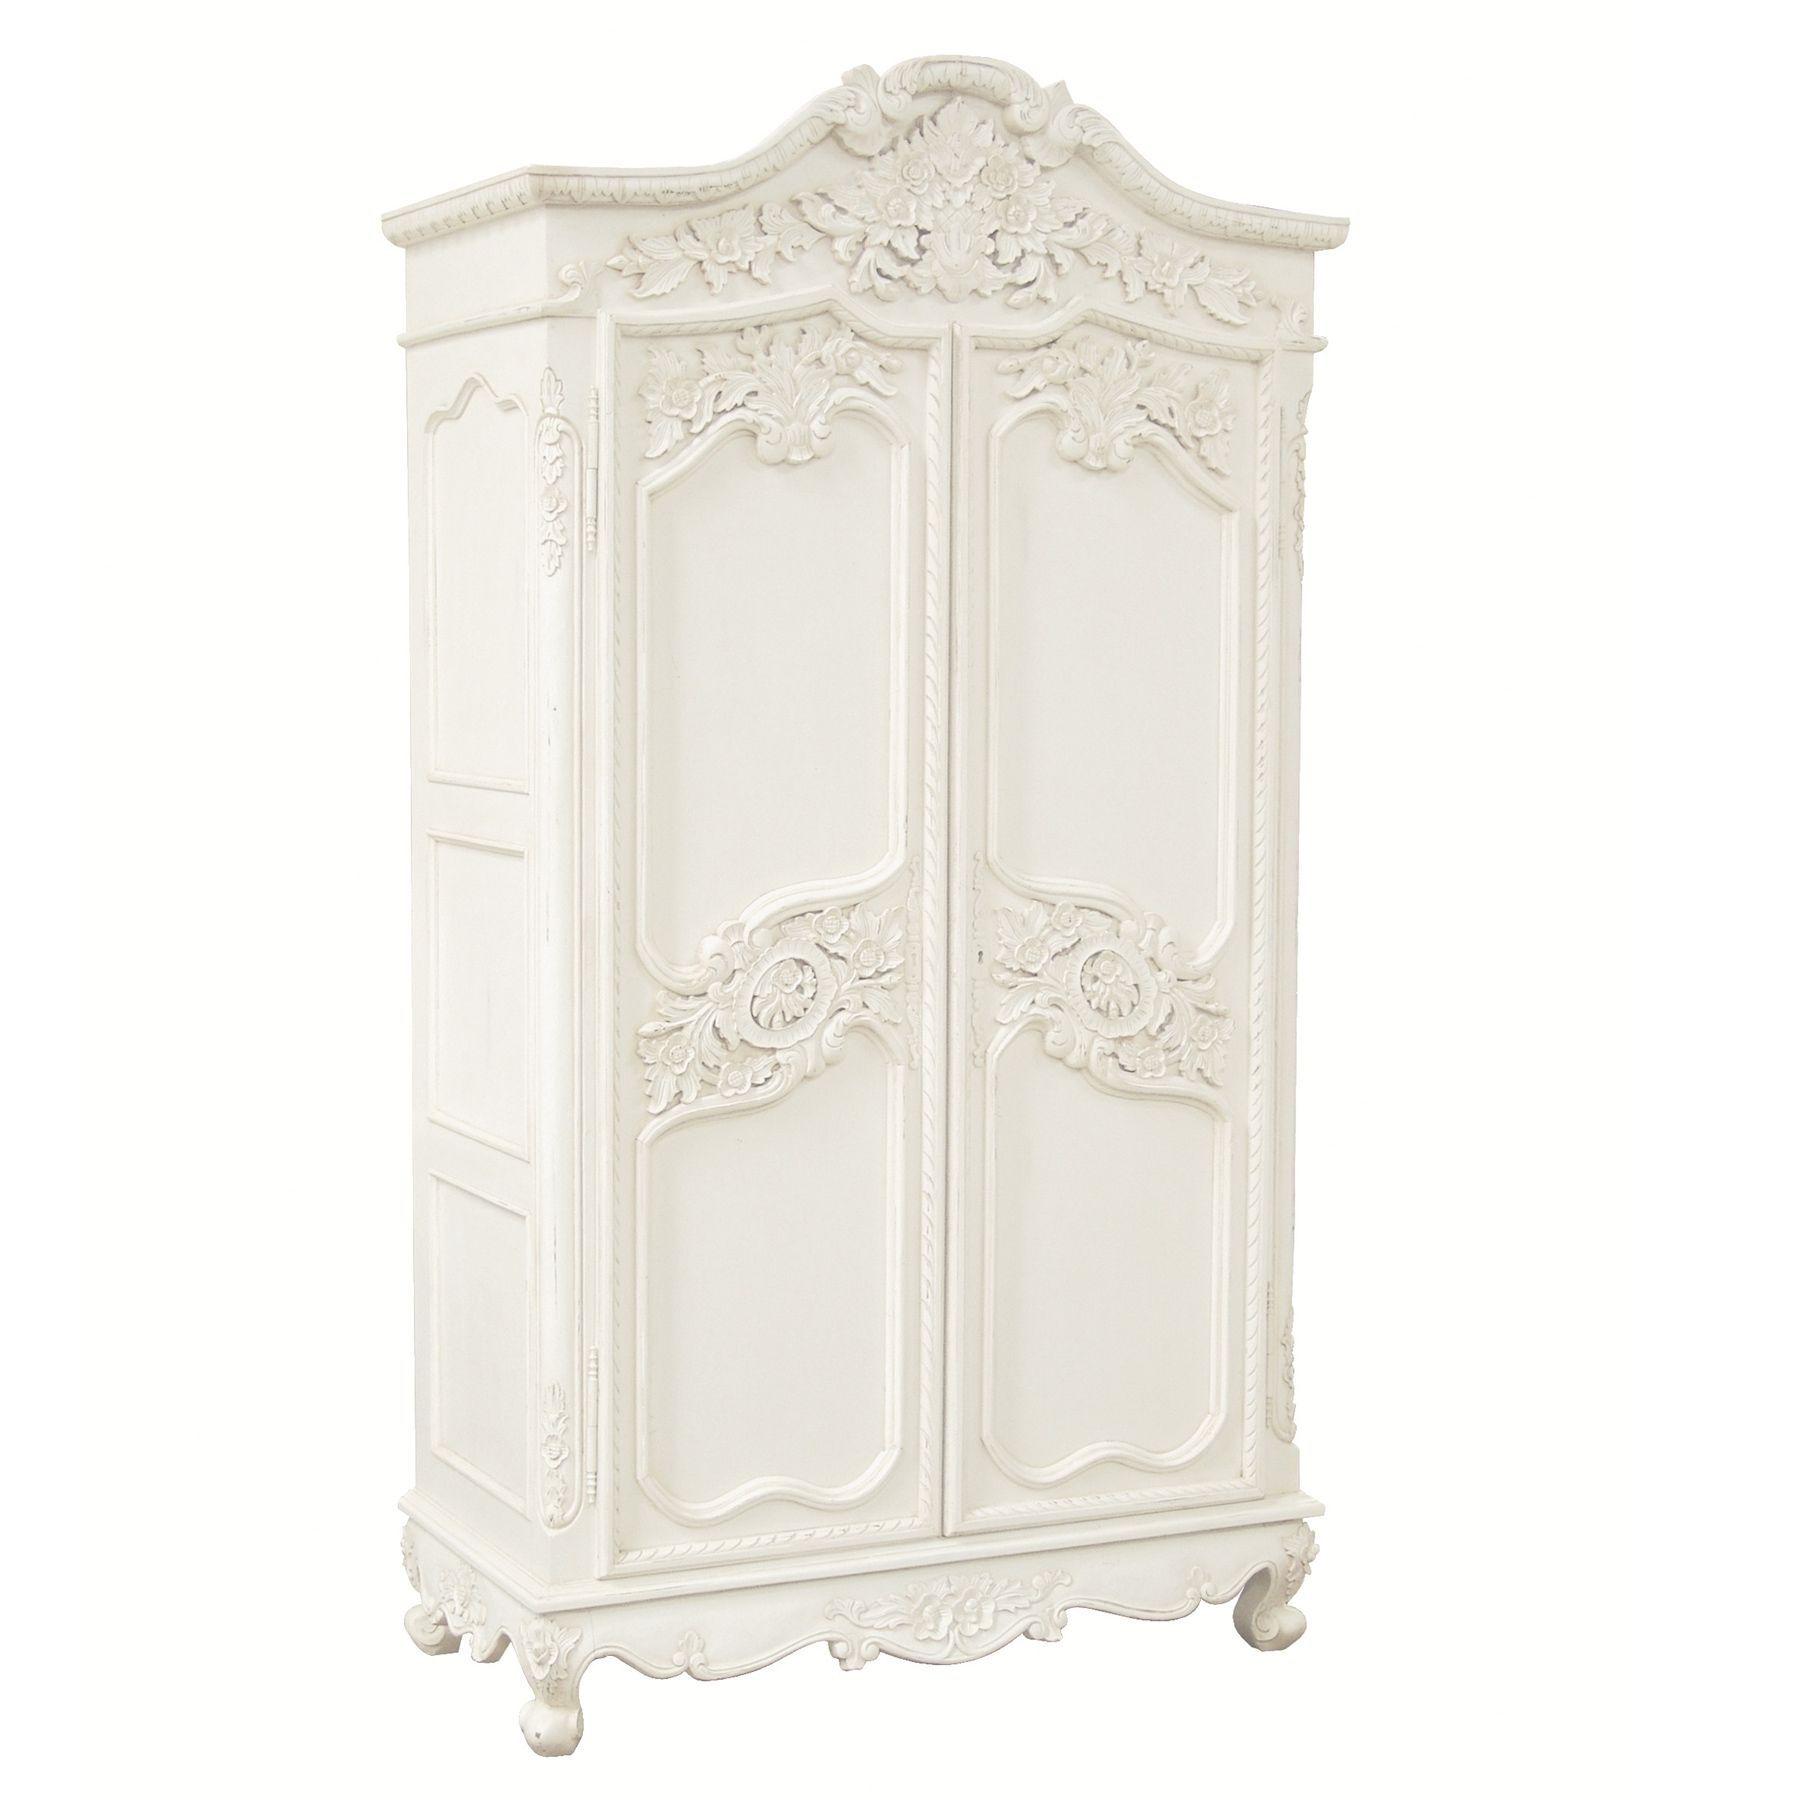 white wood wardrobe armoire shabby chic bedroom. Possibly One Of The Most Beautiful Antique White Distressed Carved Armoires We Have Seen. Amazing Attention To Detail With Solid Rail And Removable Shelf Wood Wardrobe Armoire Shabby Chic Bedroom